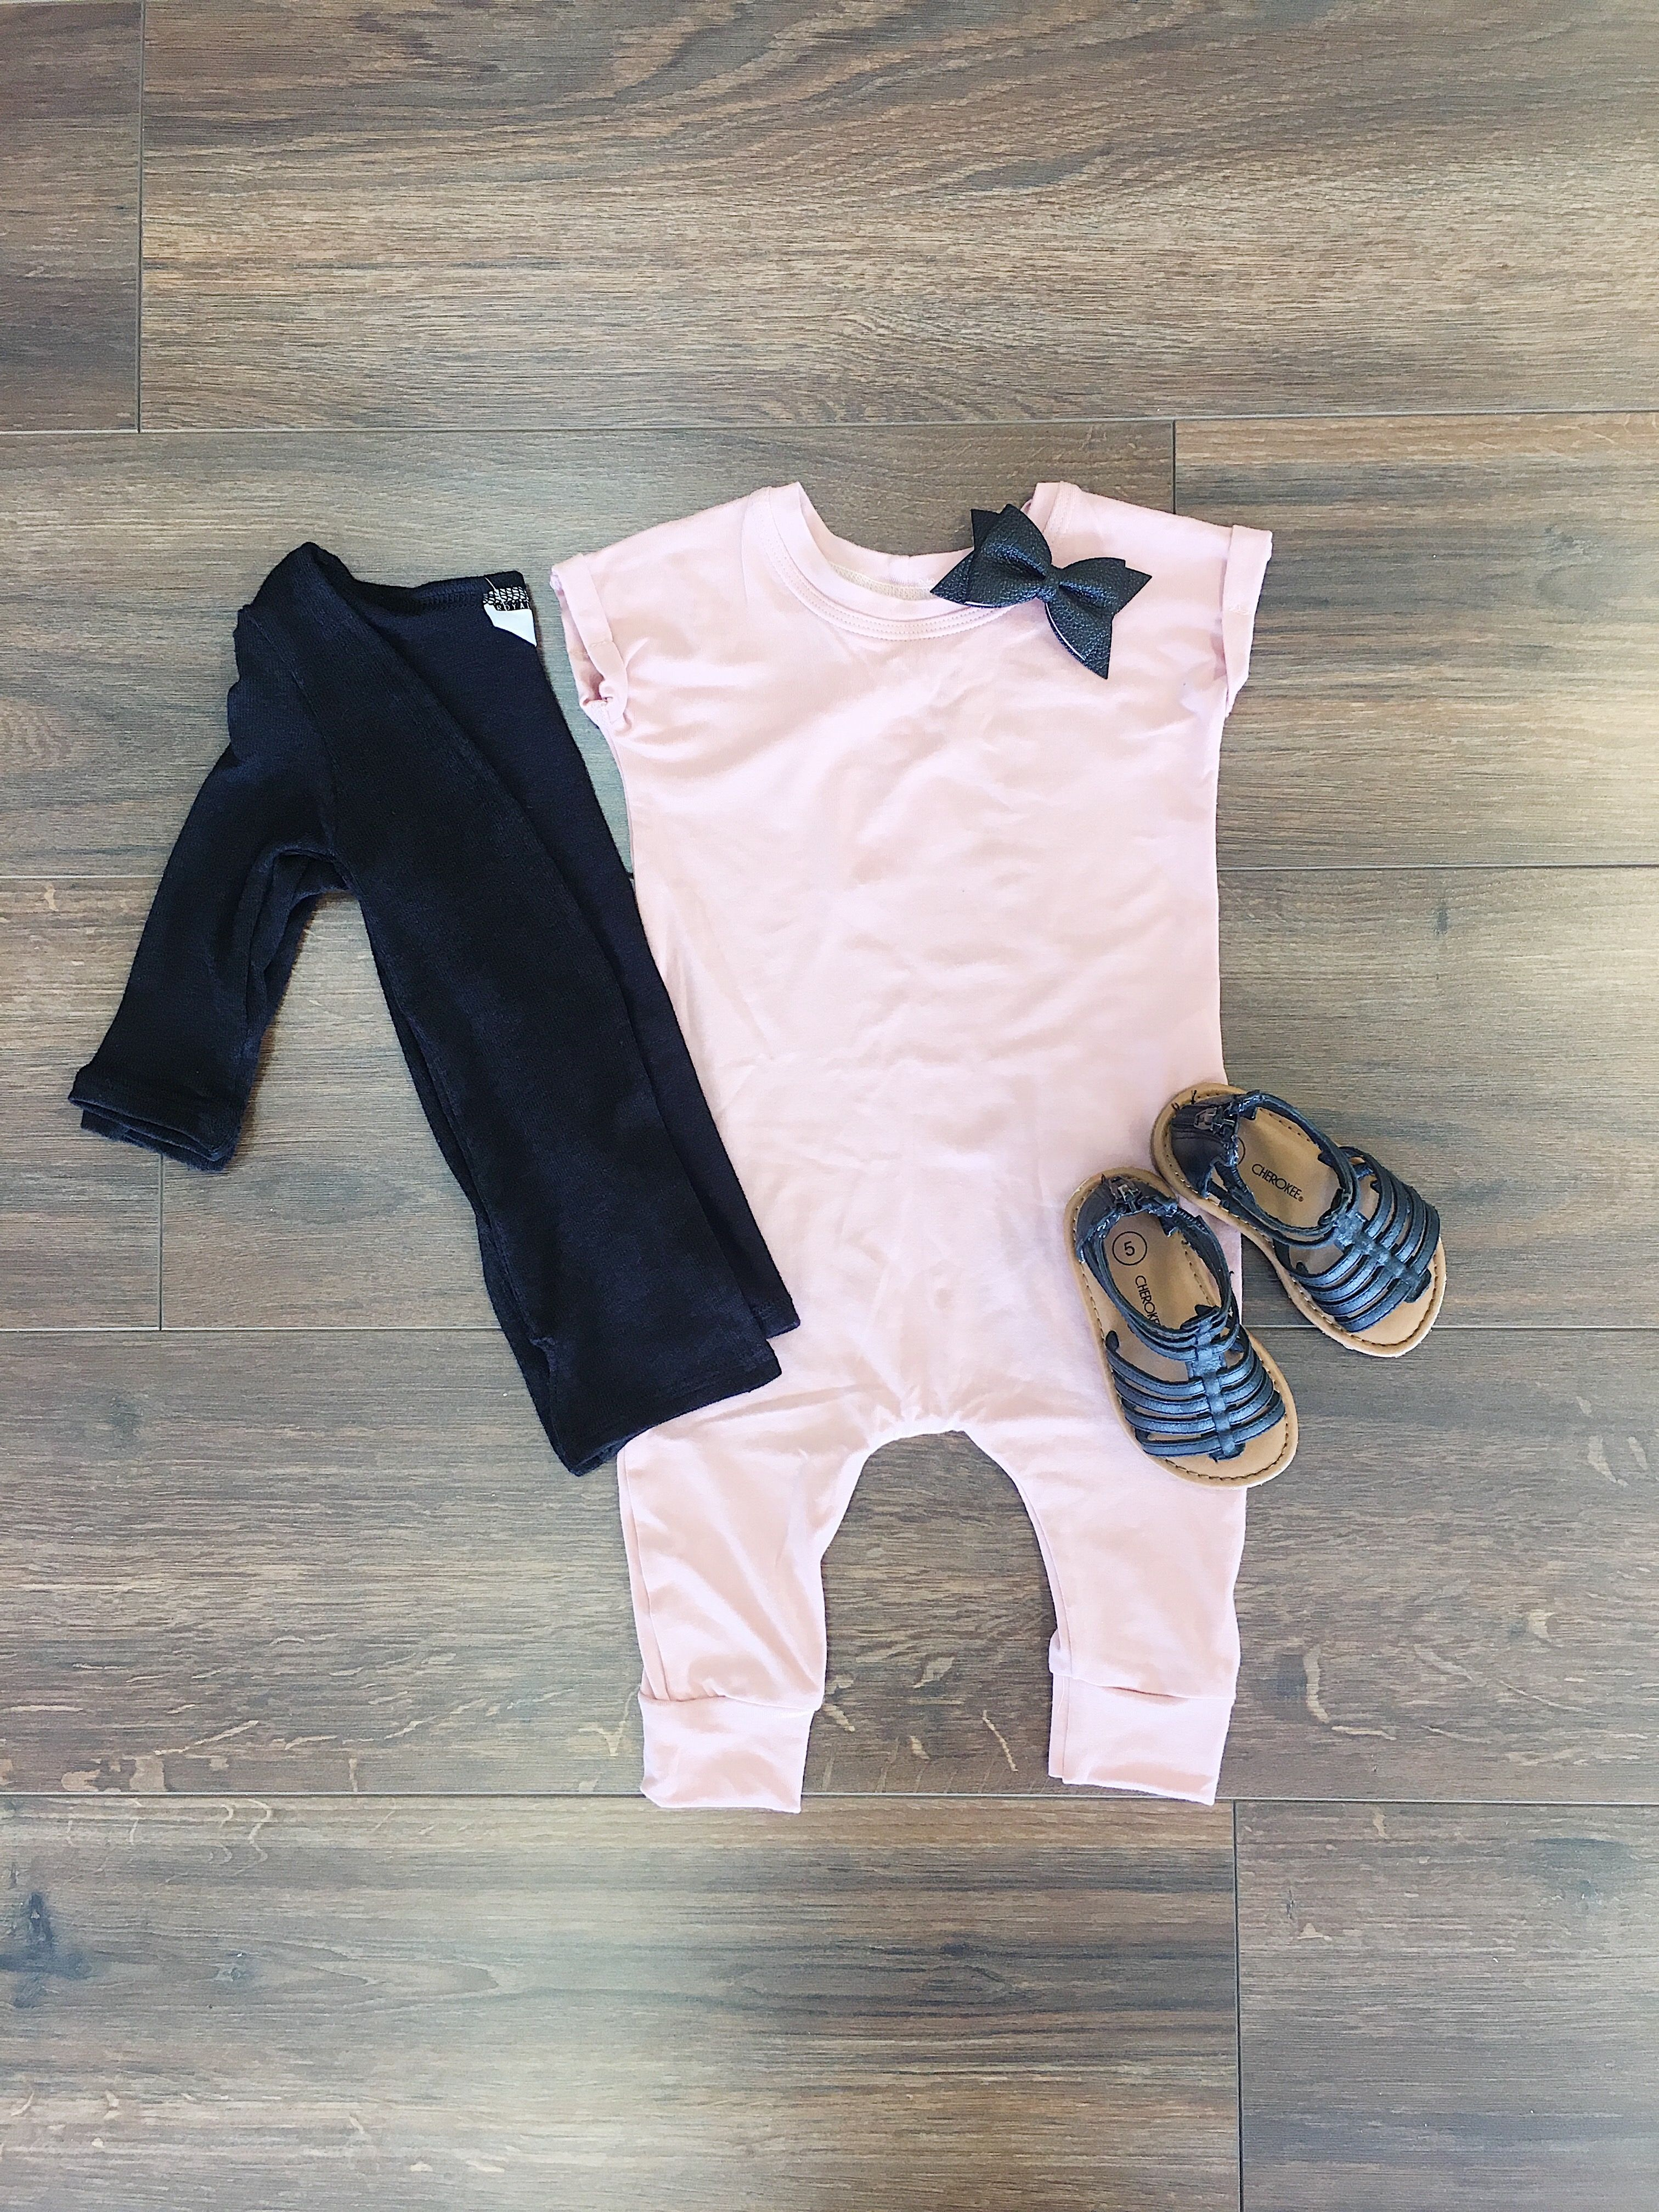 a329df48774 How sweet is this romper for a little girl ! It has a cuffed sleeve and the  baby blush color is too cute!